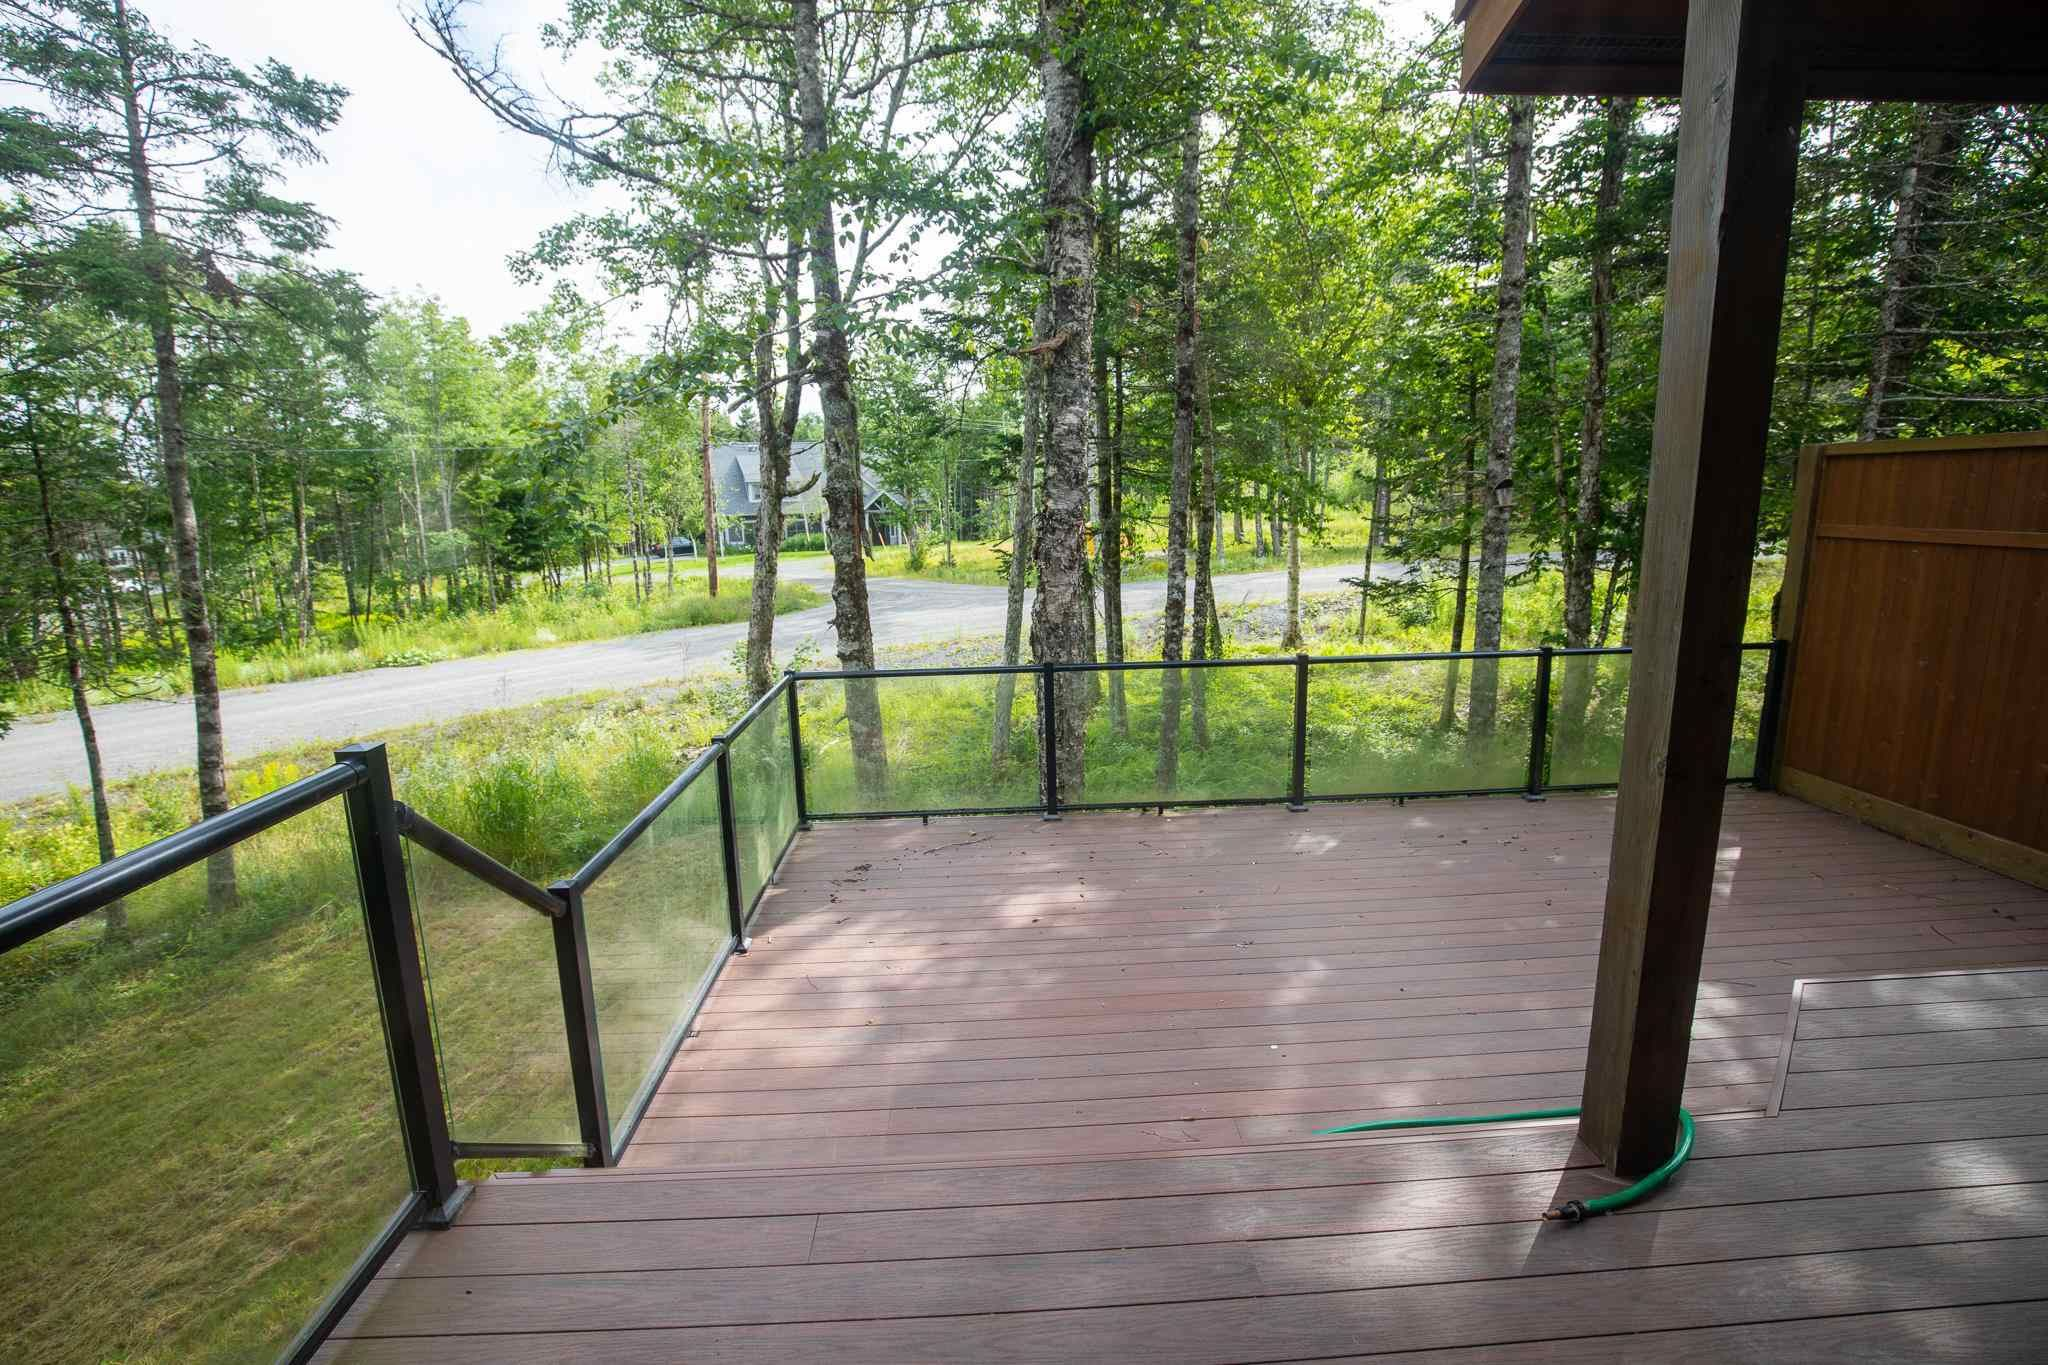 Photo 8: Photos: 7 Black Cherry Lane in Ardoise: 403-Hants County Residential for sale (Annapolis Valley)  : MLS®# 202118682